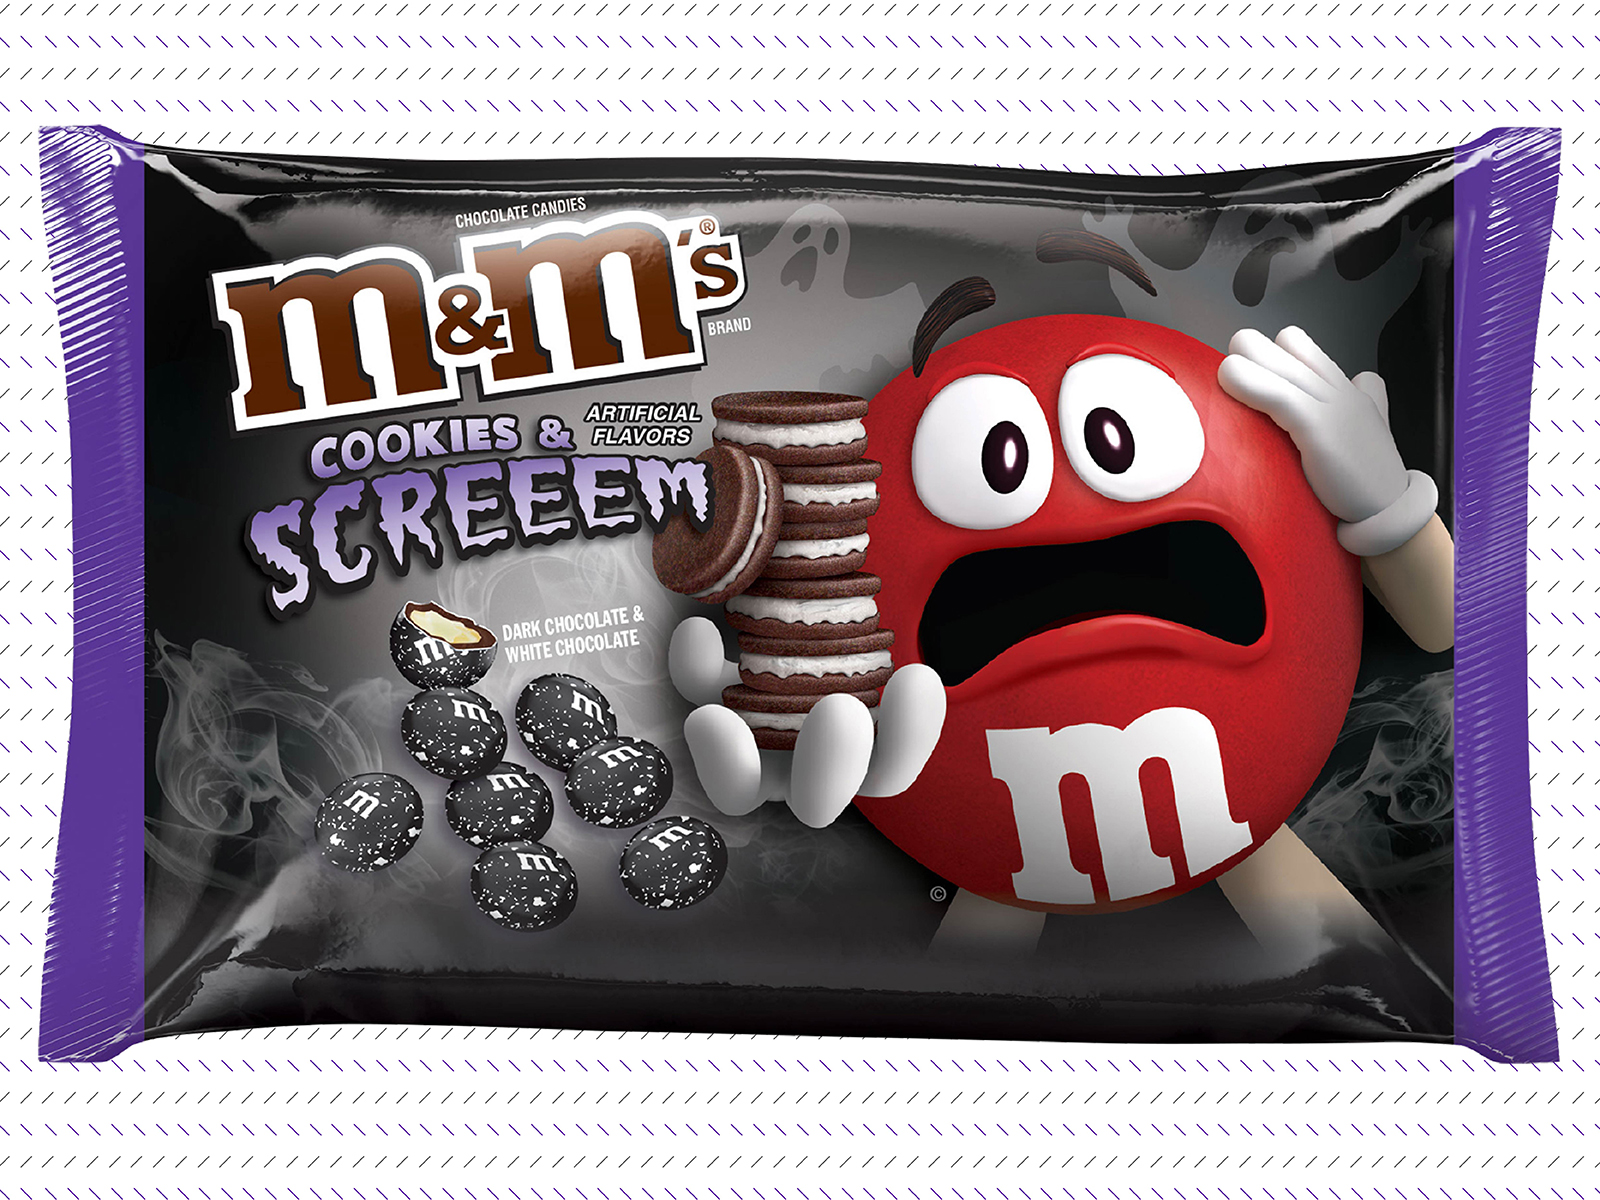 Introducing your next obsession: Cookies and cream M&M's